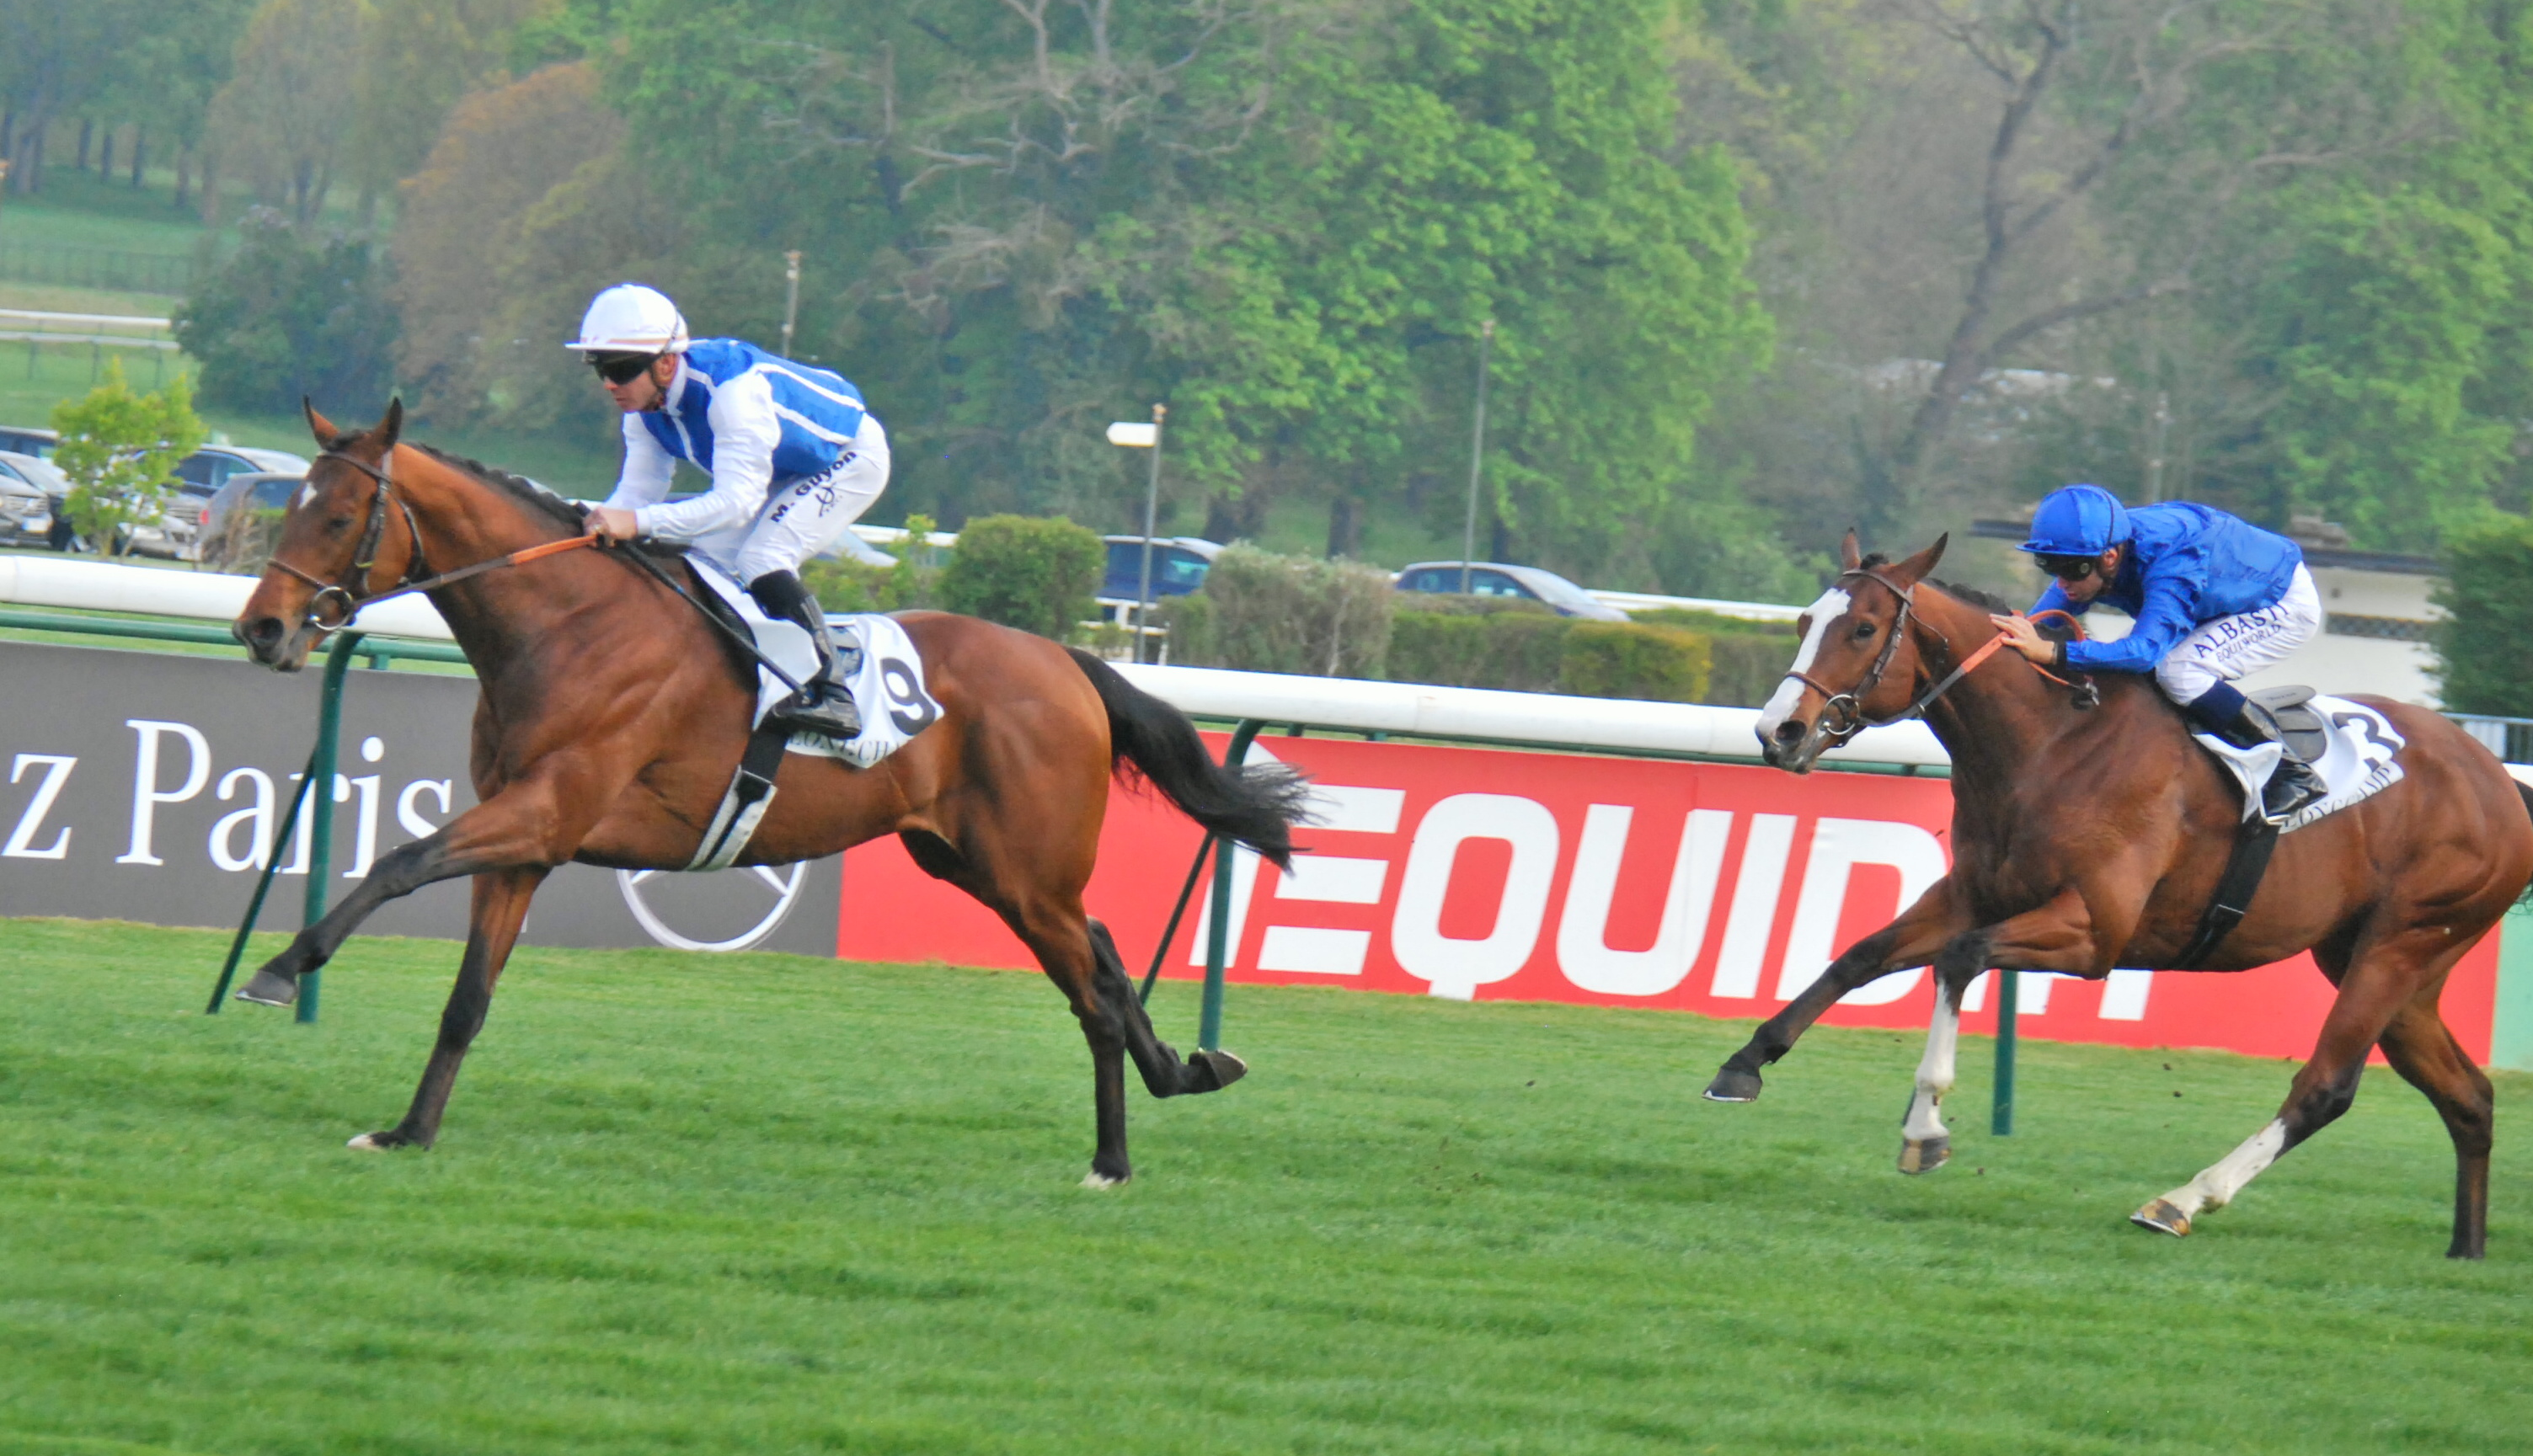 Contender: Slalom (Maxime Guyon) winning the G3 Prix Noailles at ParisLongchamp last month. Photo: John Gilmore